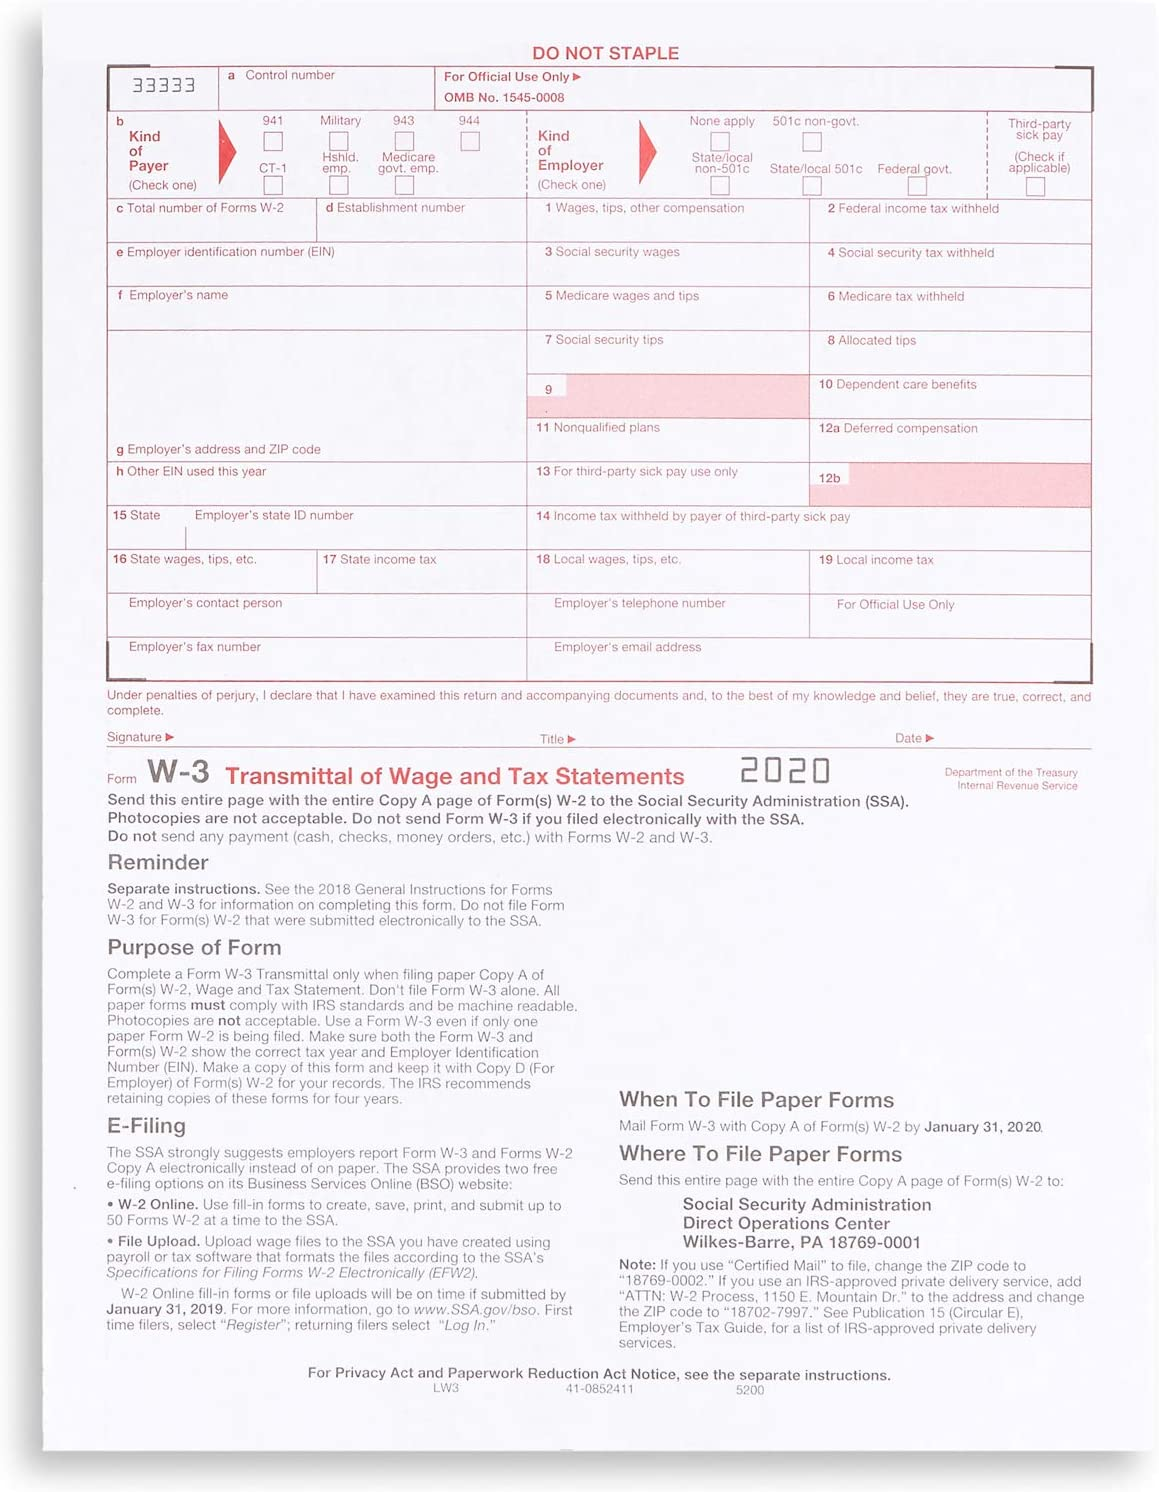 W2 Forms 2020, 4 Part Tax Forms, 25 Employee Kit of Laser Forms, Compatible with QuickBooks and Accounting Software, 25 Self Seal Envelopes Included : Office Products